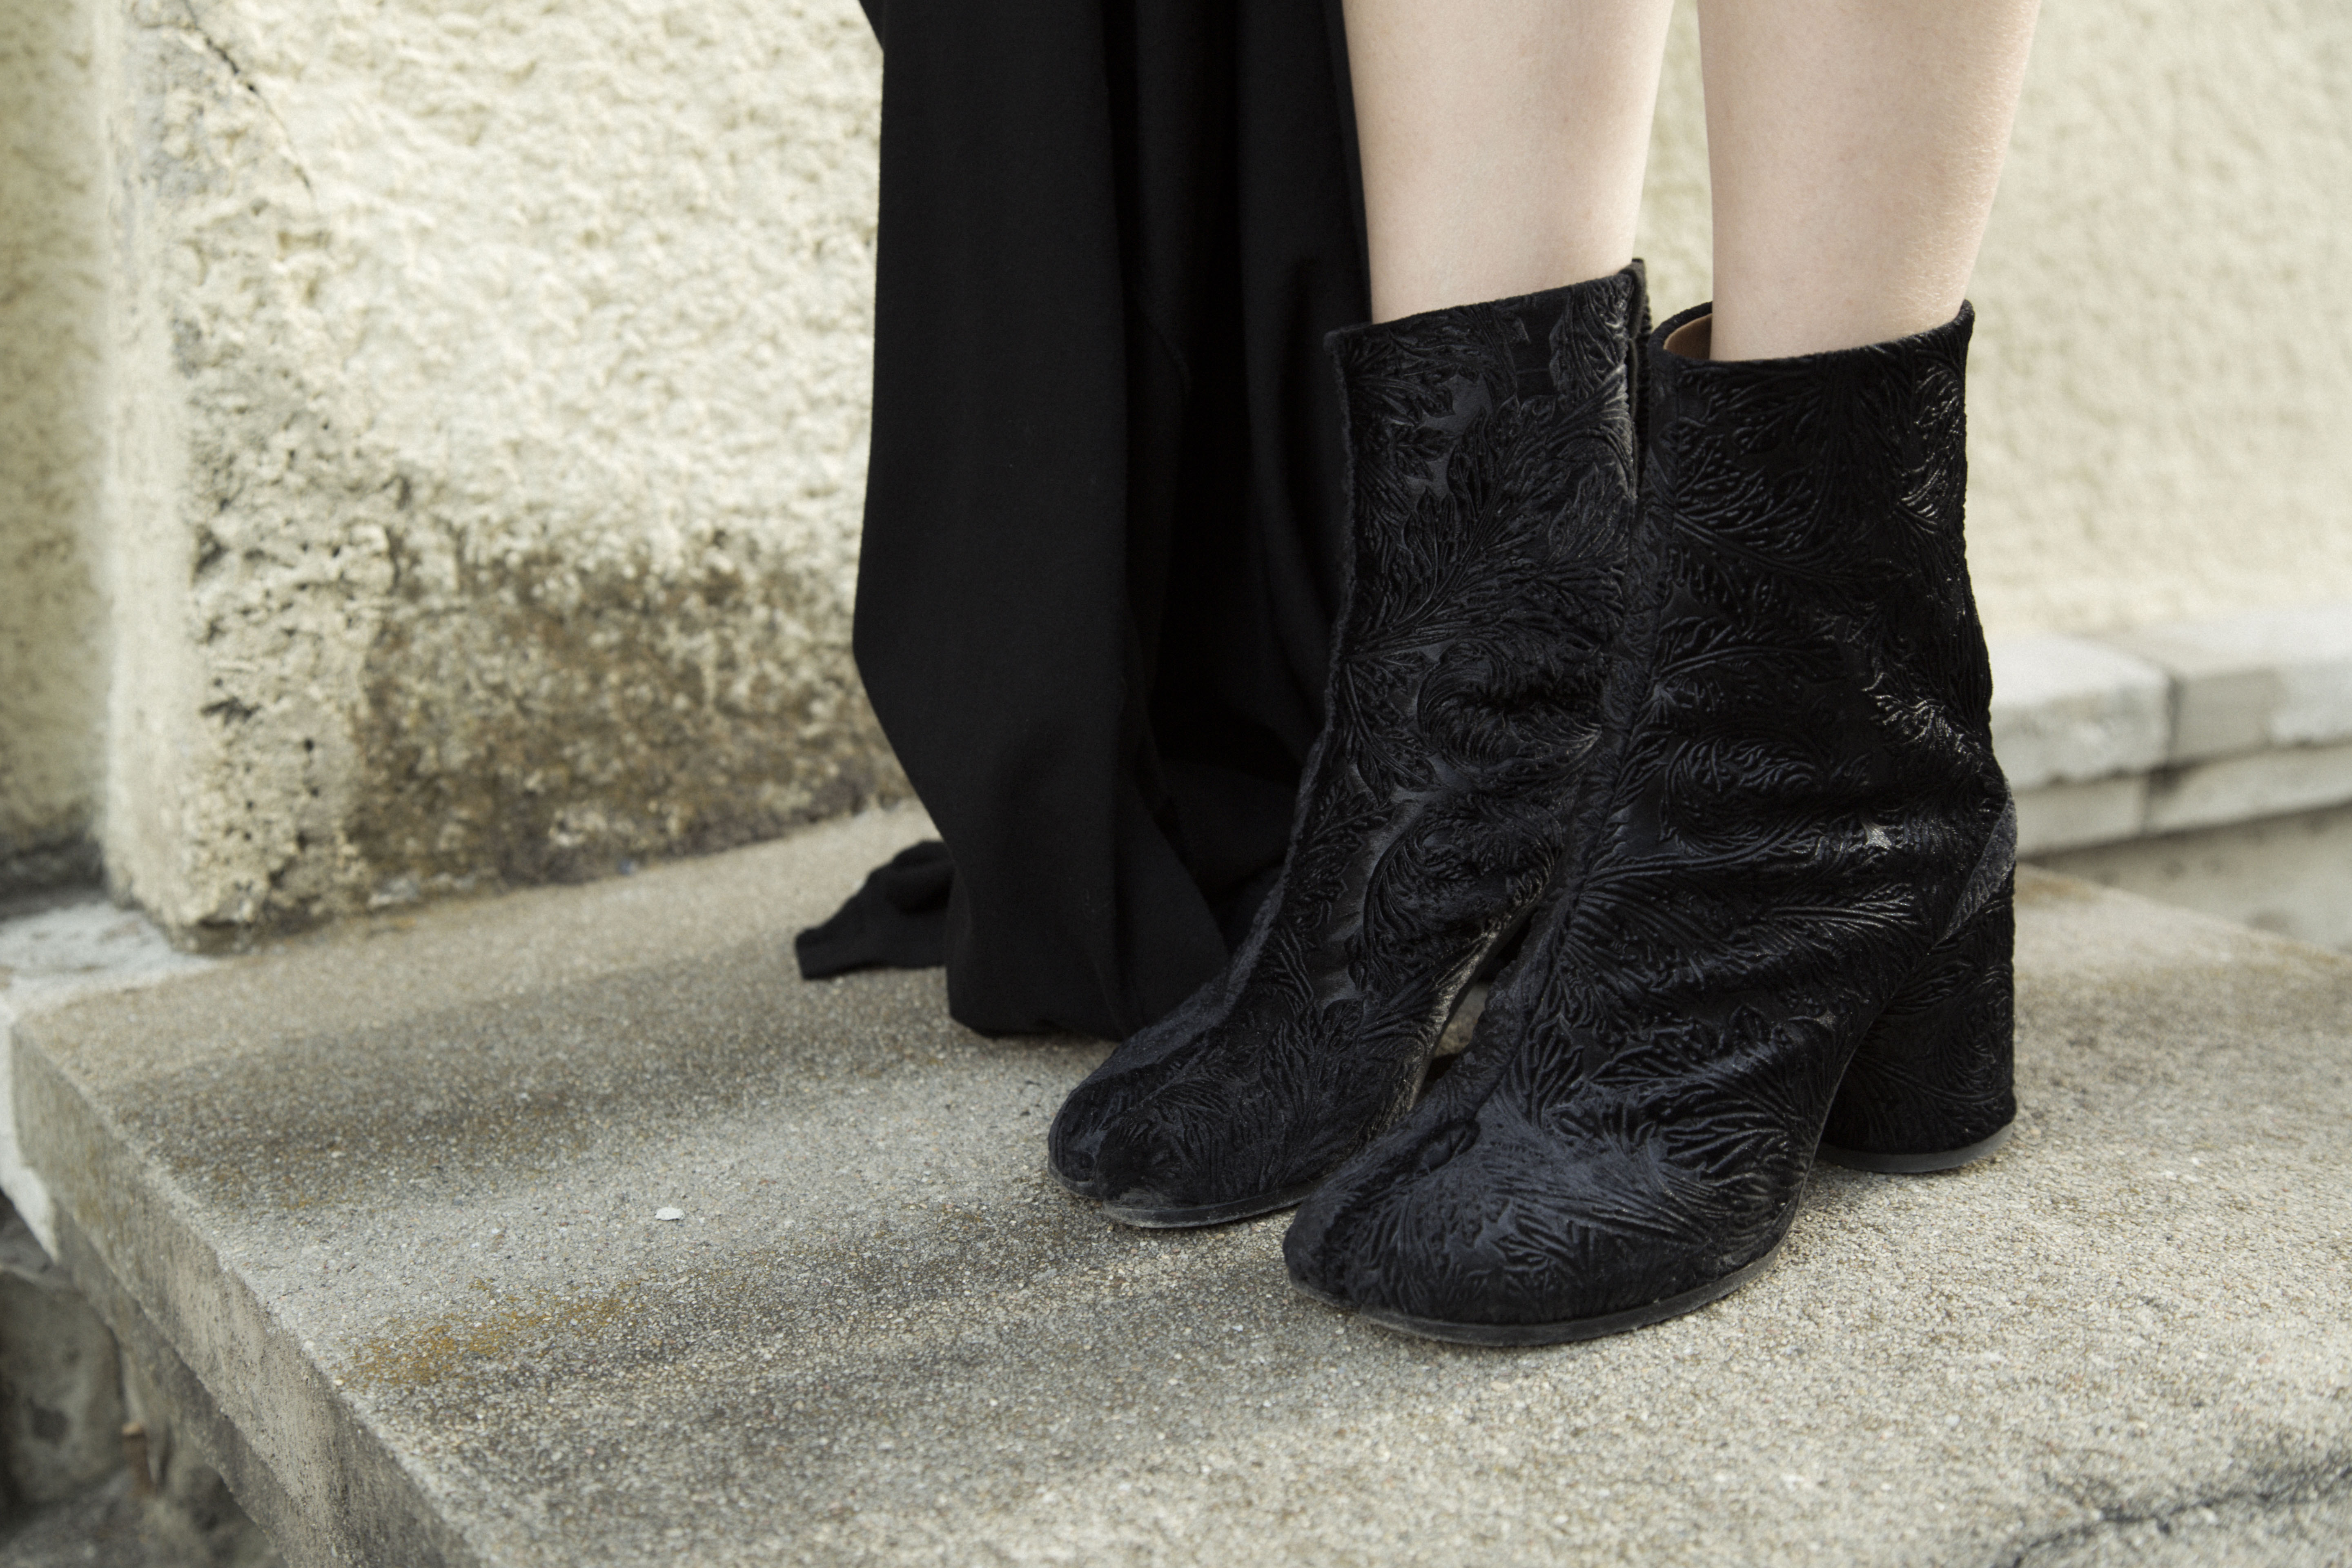 I heart Alice / Looks of Alice: Black Maison Martin Margiela Tabi Boots